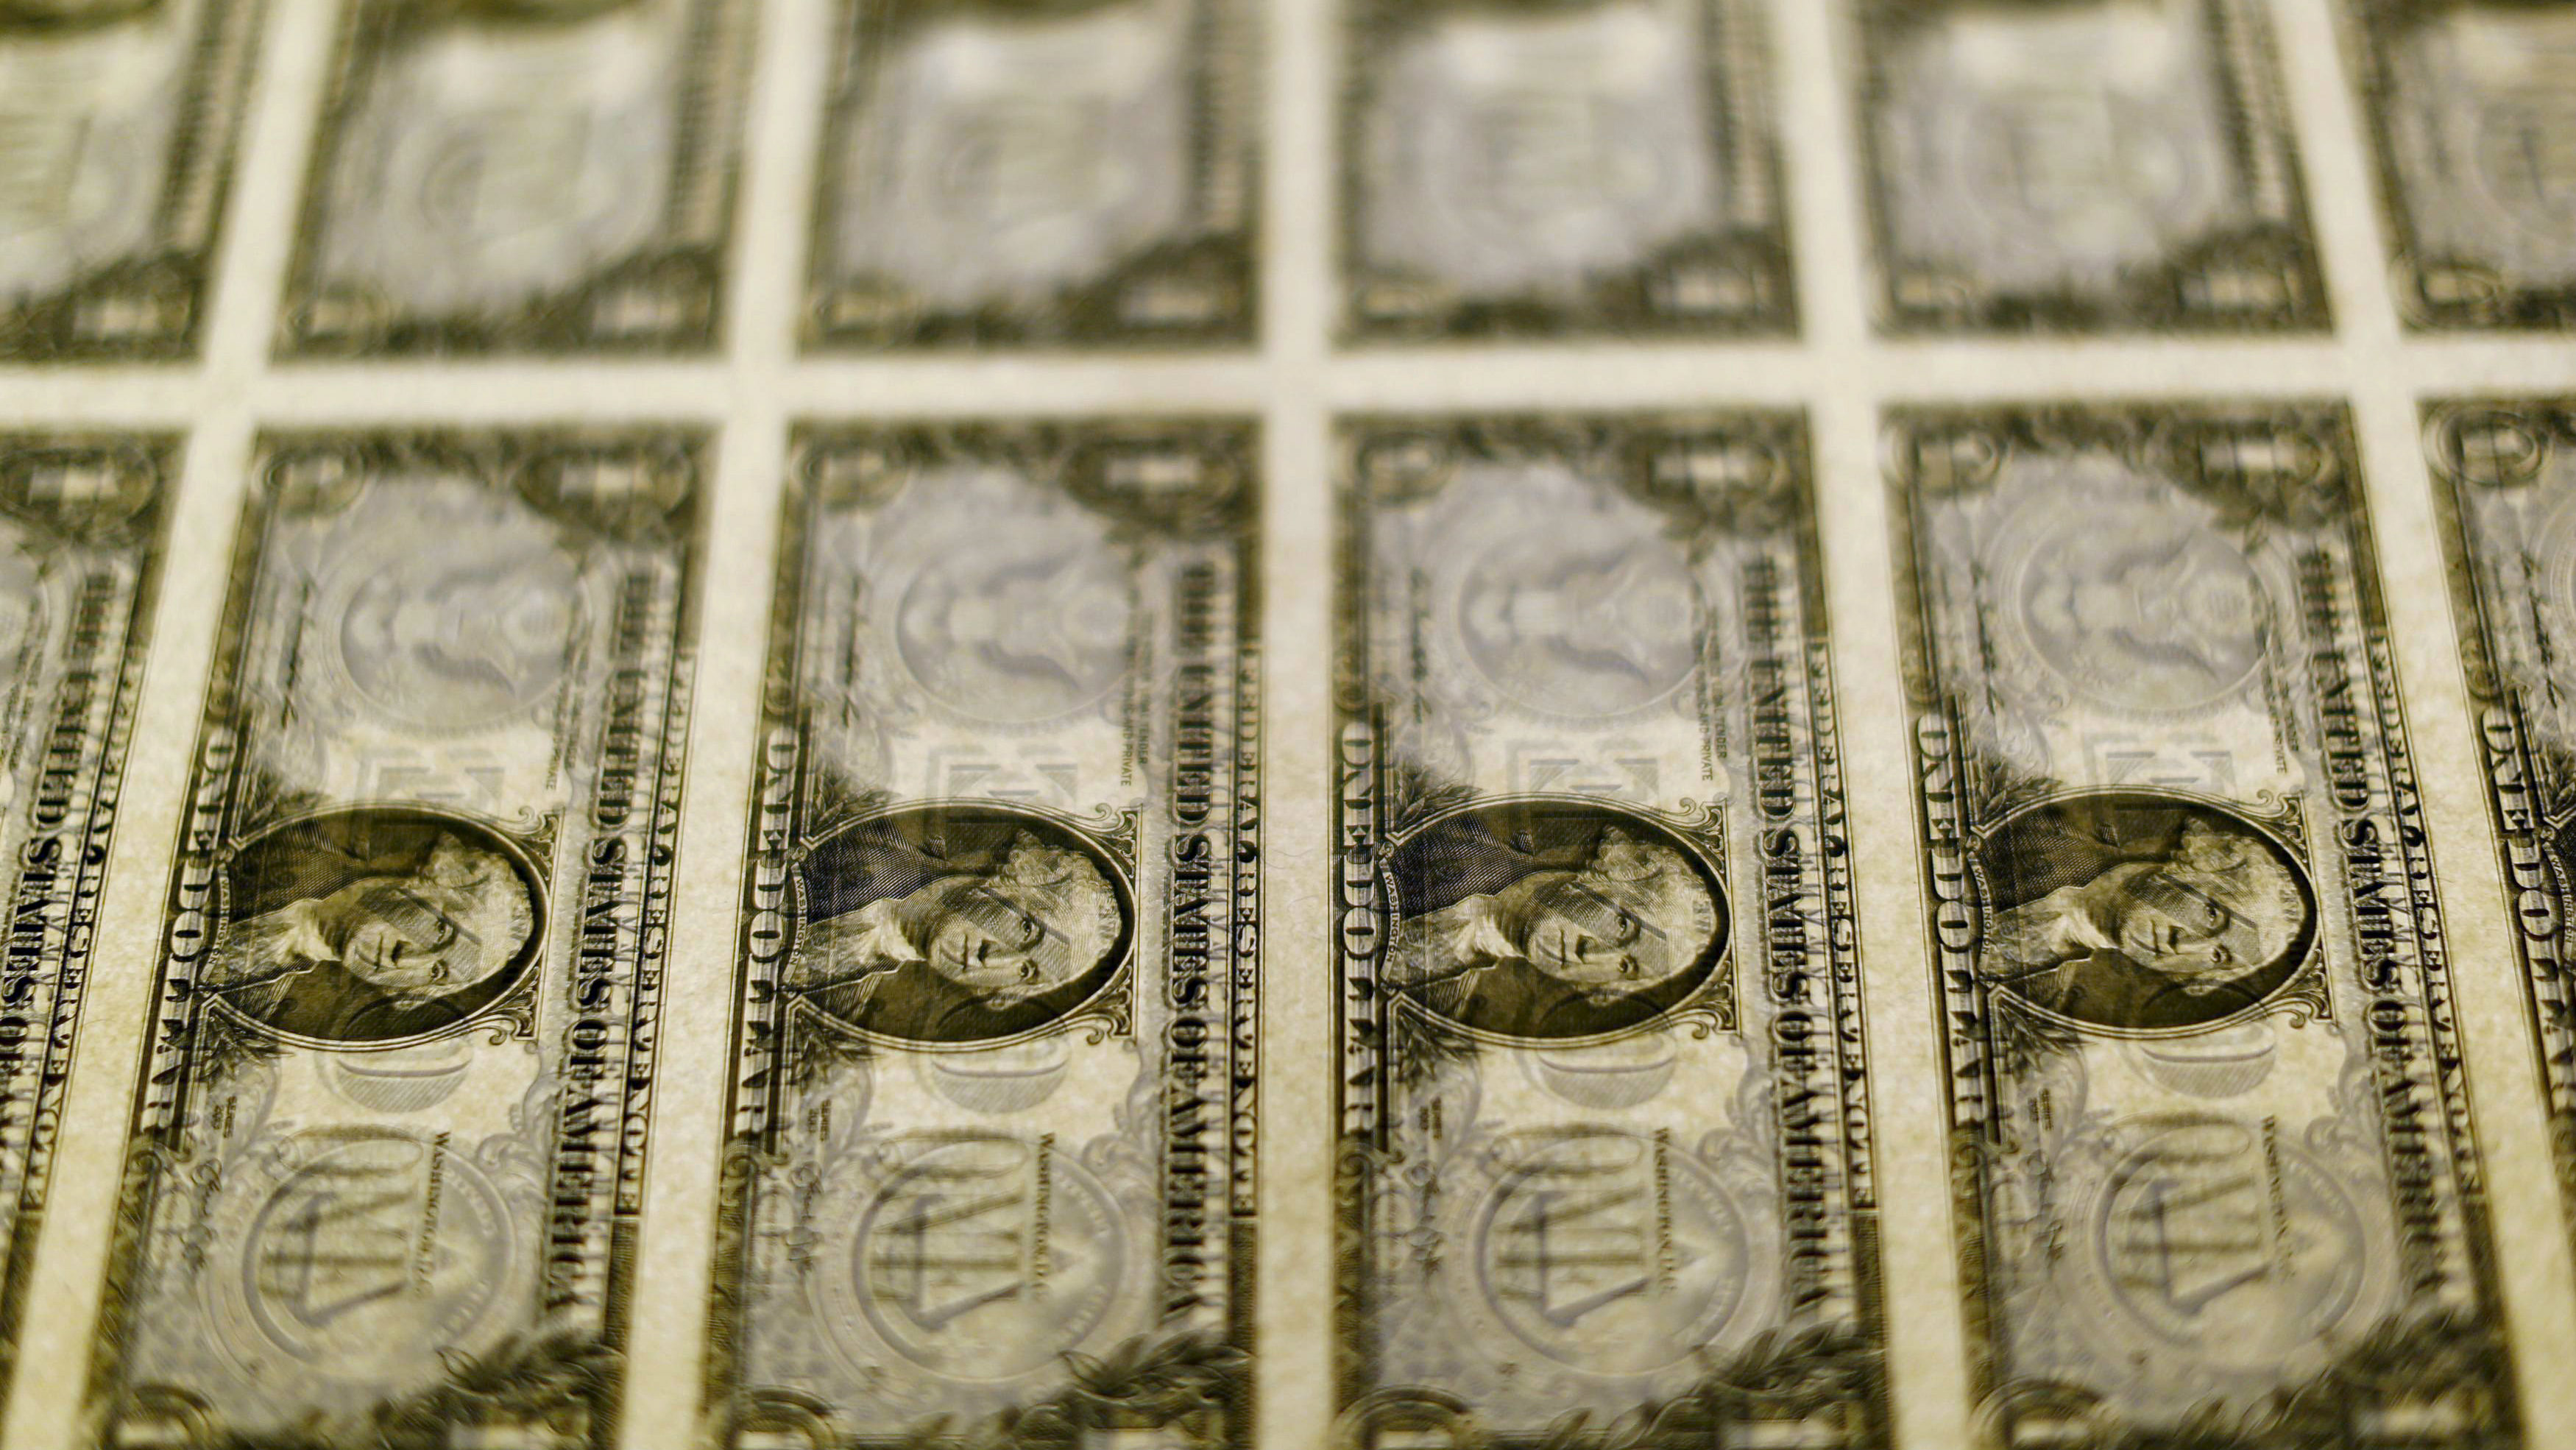 United States one dollar bills are seen on a light table at the Bureau of Engraving and Printing in Washington in this November 14, 2014, file photo.